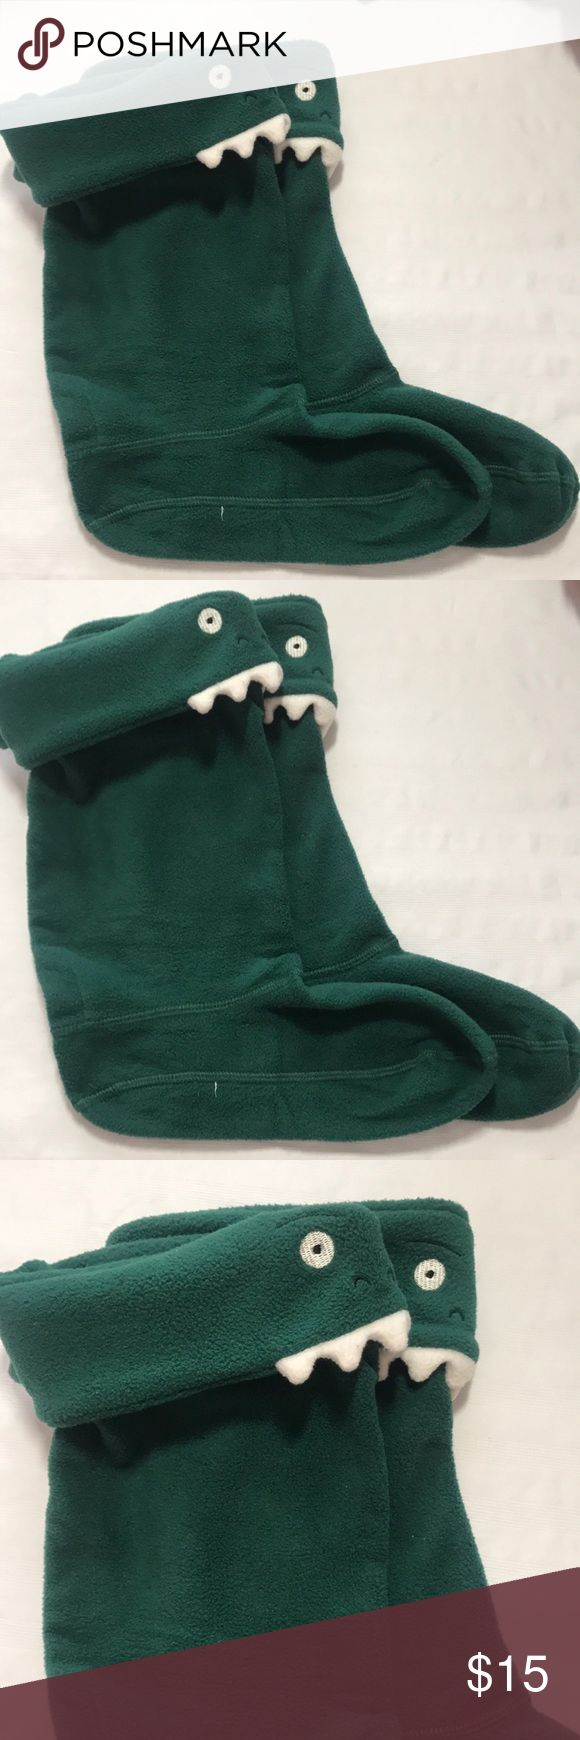 JOULES WELLY SOCKS Children's Dinosaur  L GREEN JOULES WELLY SOCKS Children's Dinosaur  size L GREEN Joules Accessories Socks & Tights